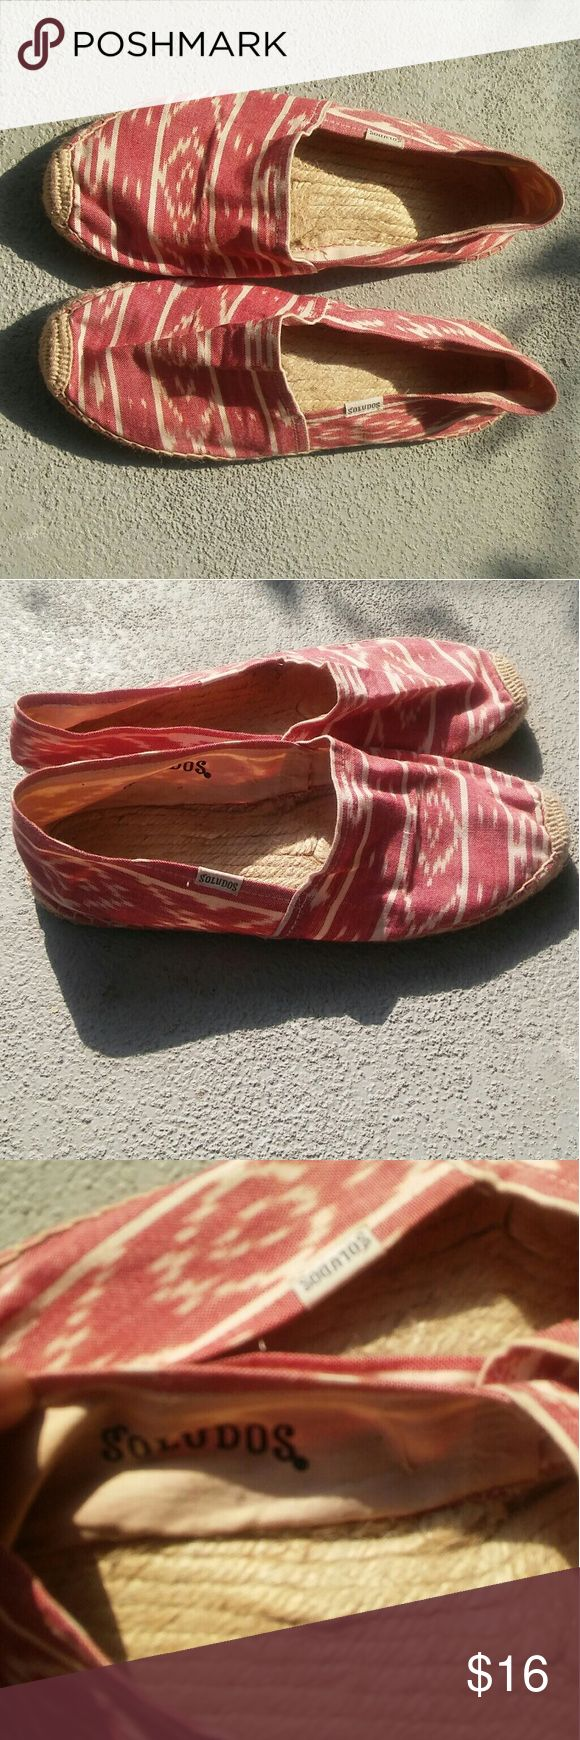 SOLUDOS Ladies Espadrilles Size 8 Nice ladies espadrilles Good pre-owned condition Size 8 Shoes Espadrilles